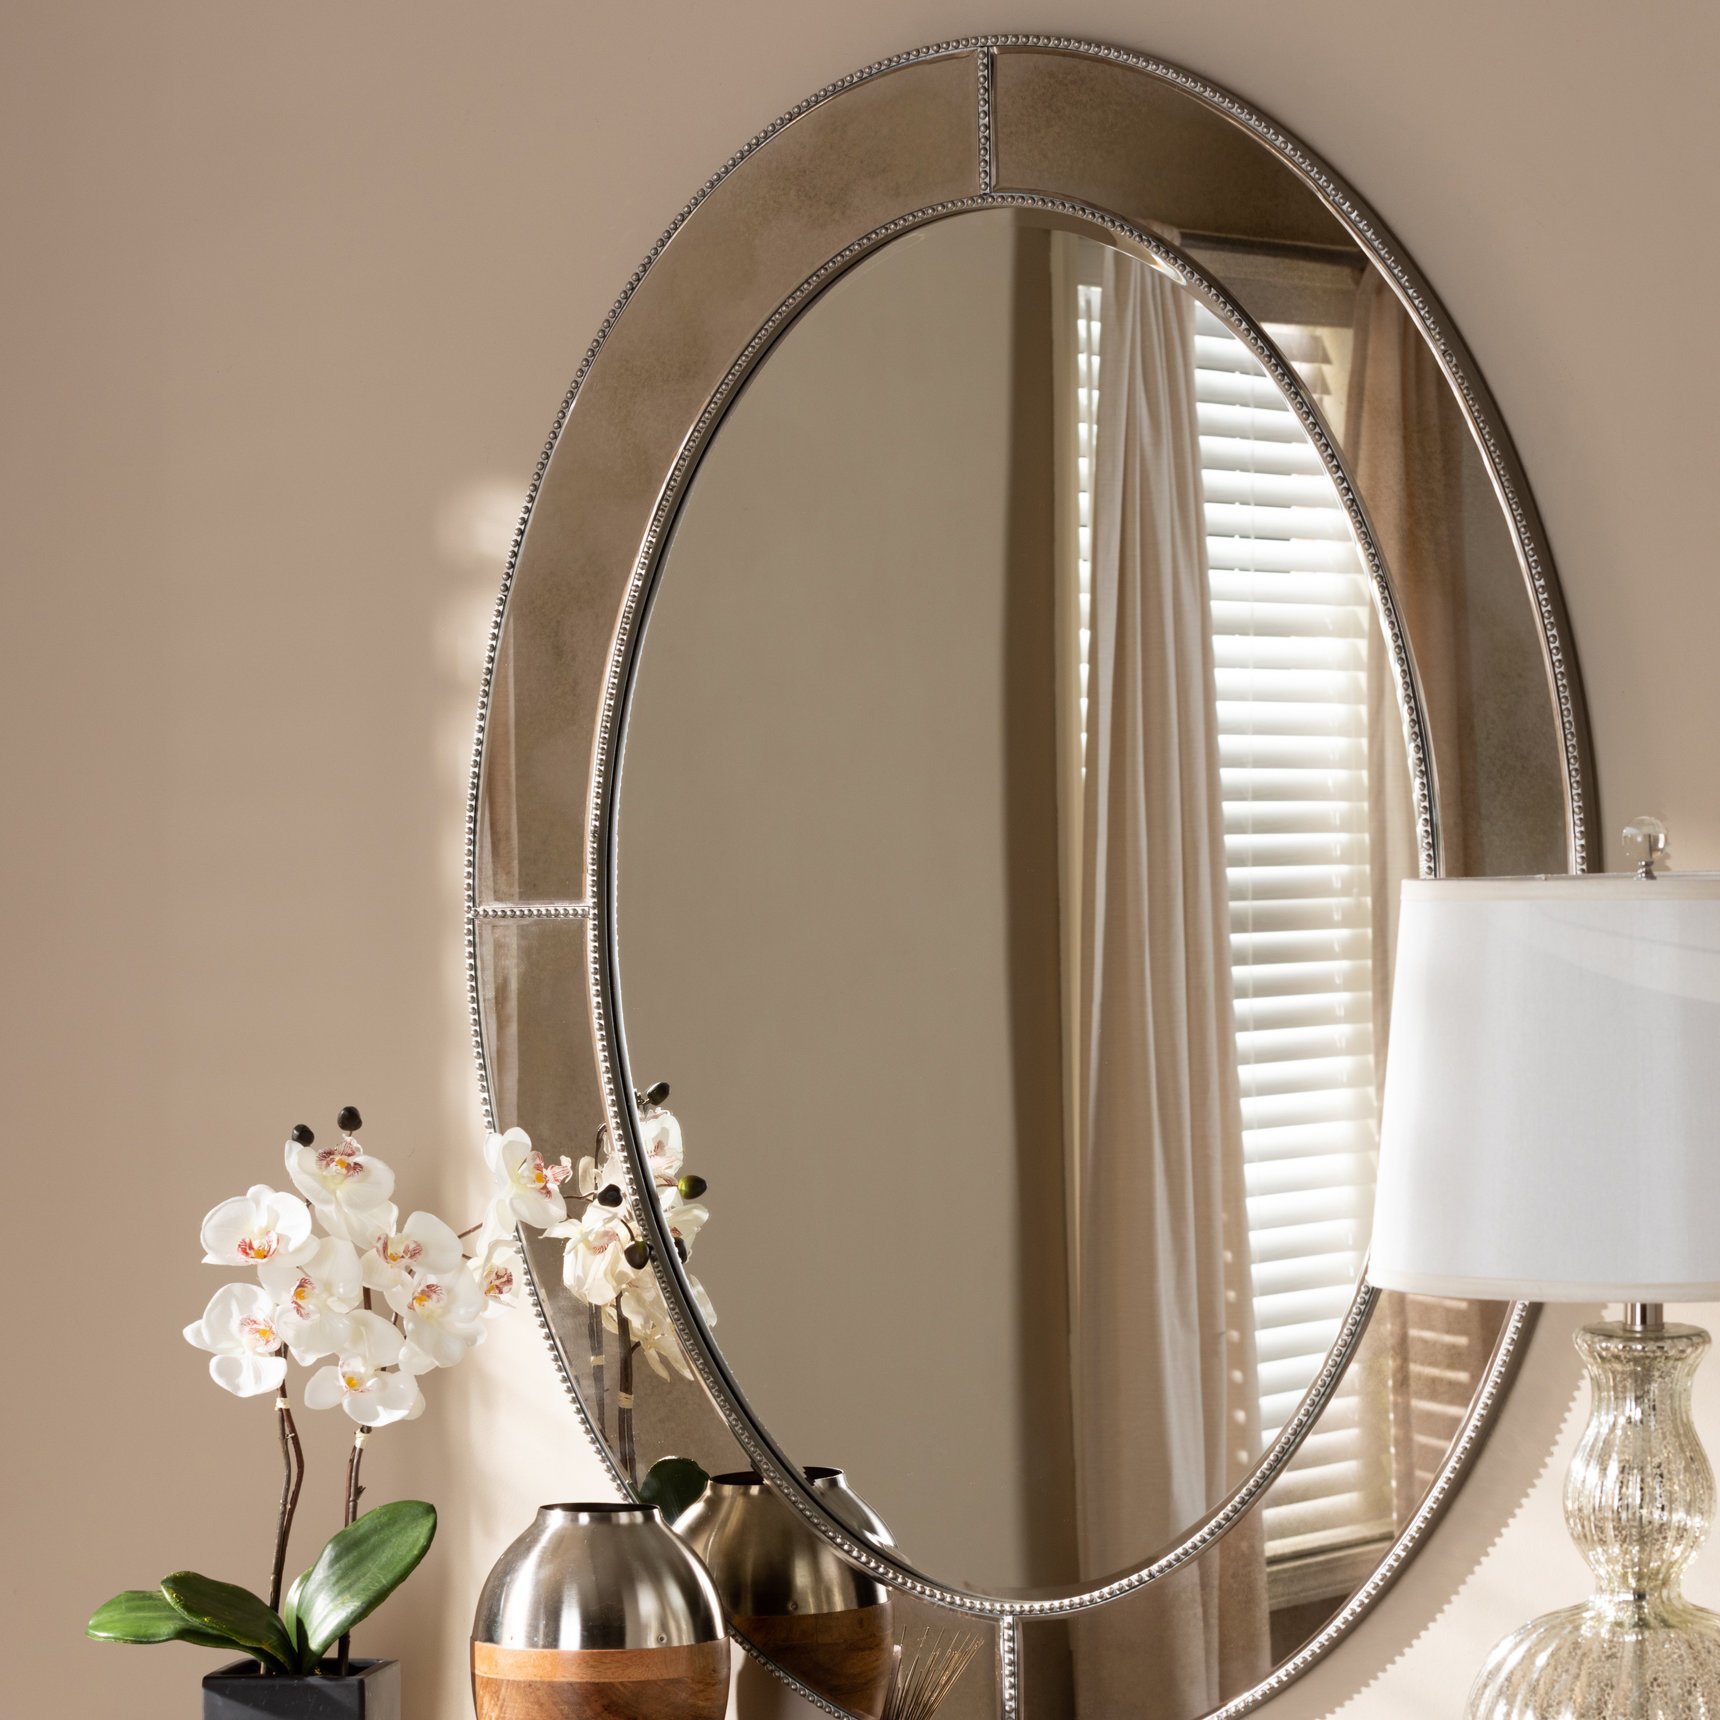 Details About Charlton Home Caffrey Wall Mirror within Metal Wall Decor By Charlton Home (Image 12 of 30)